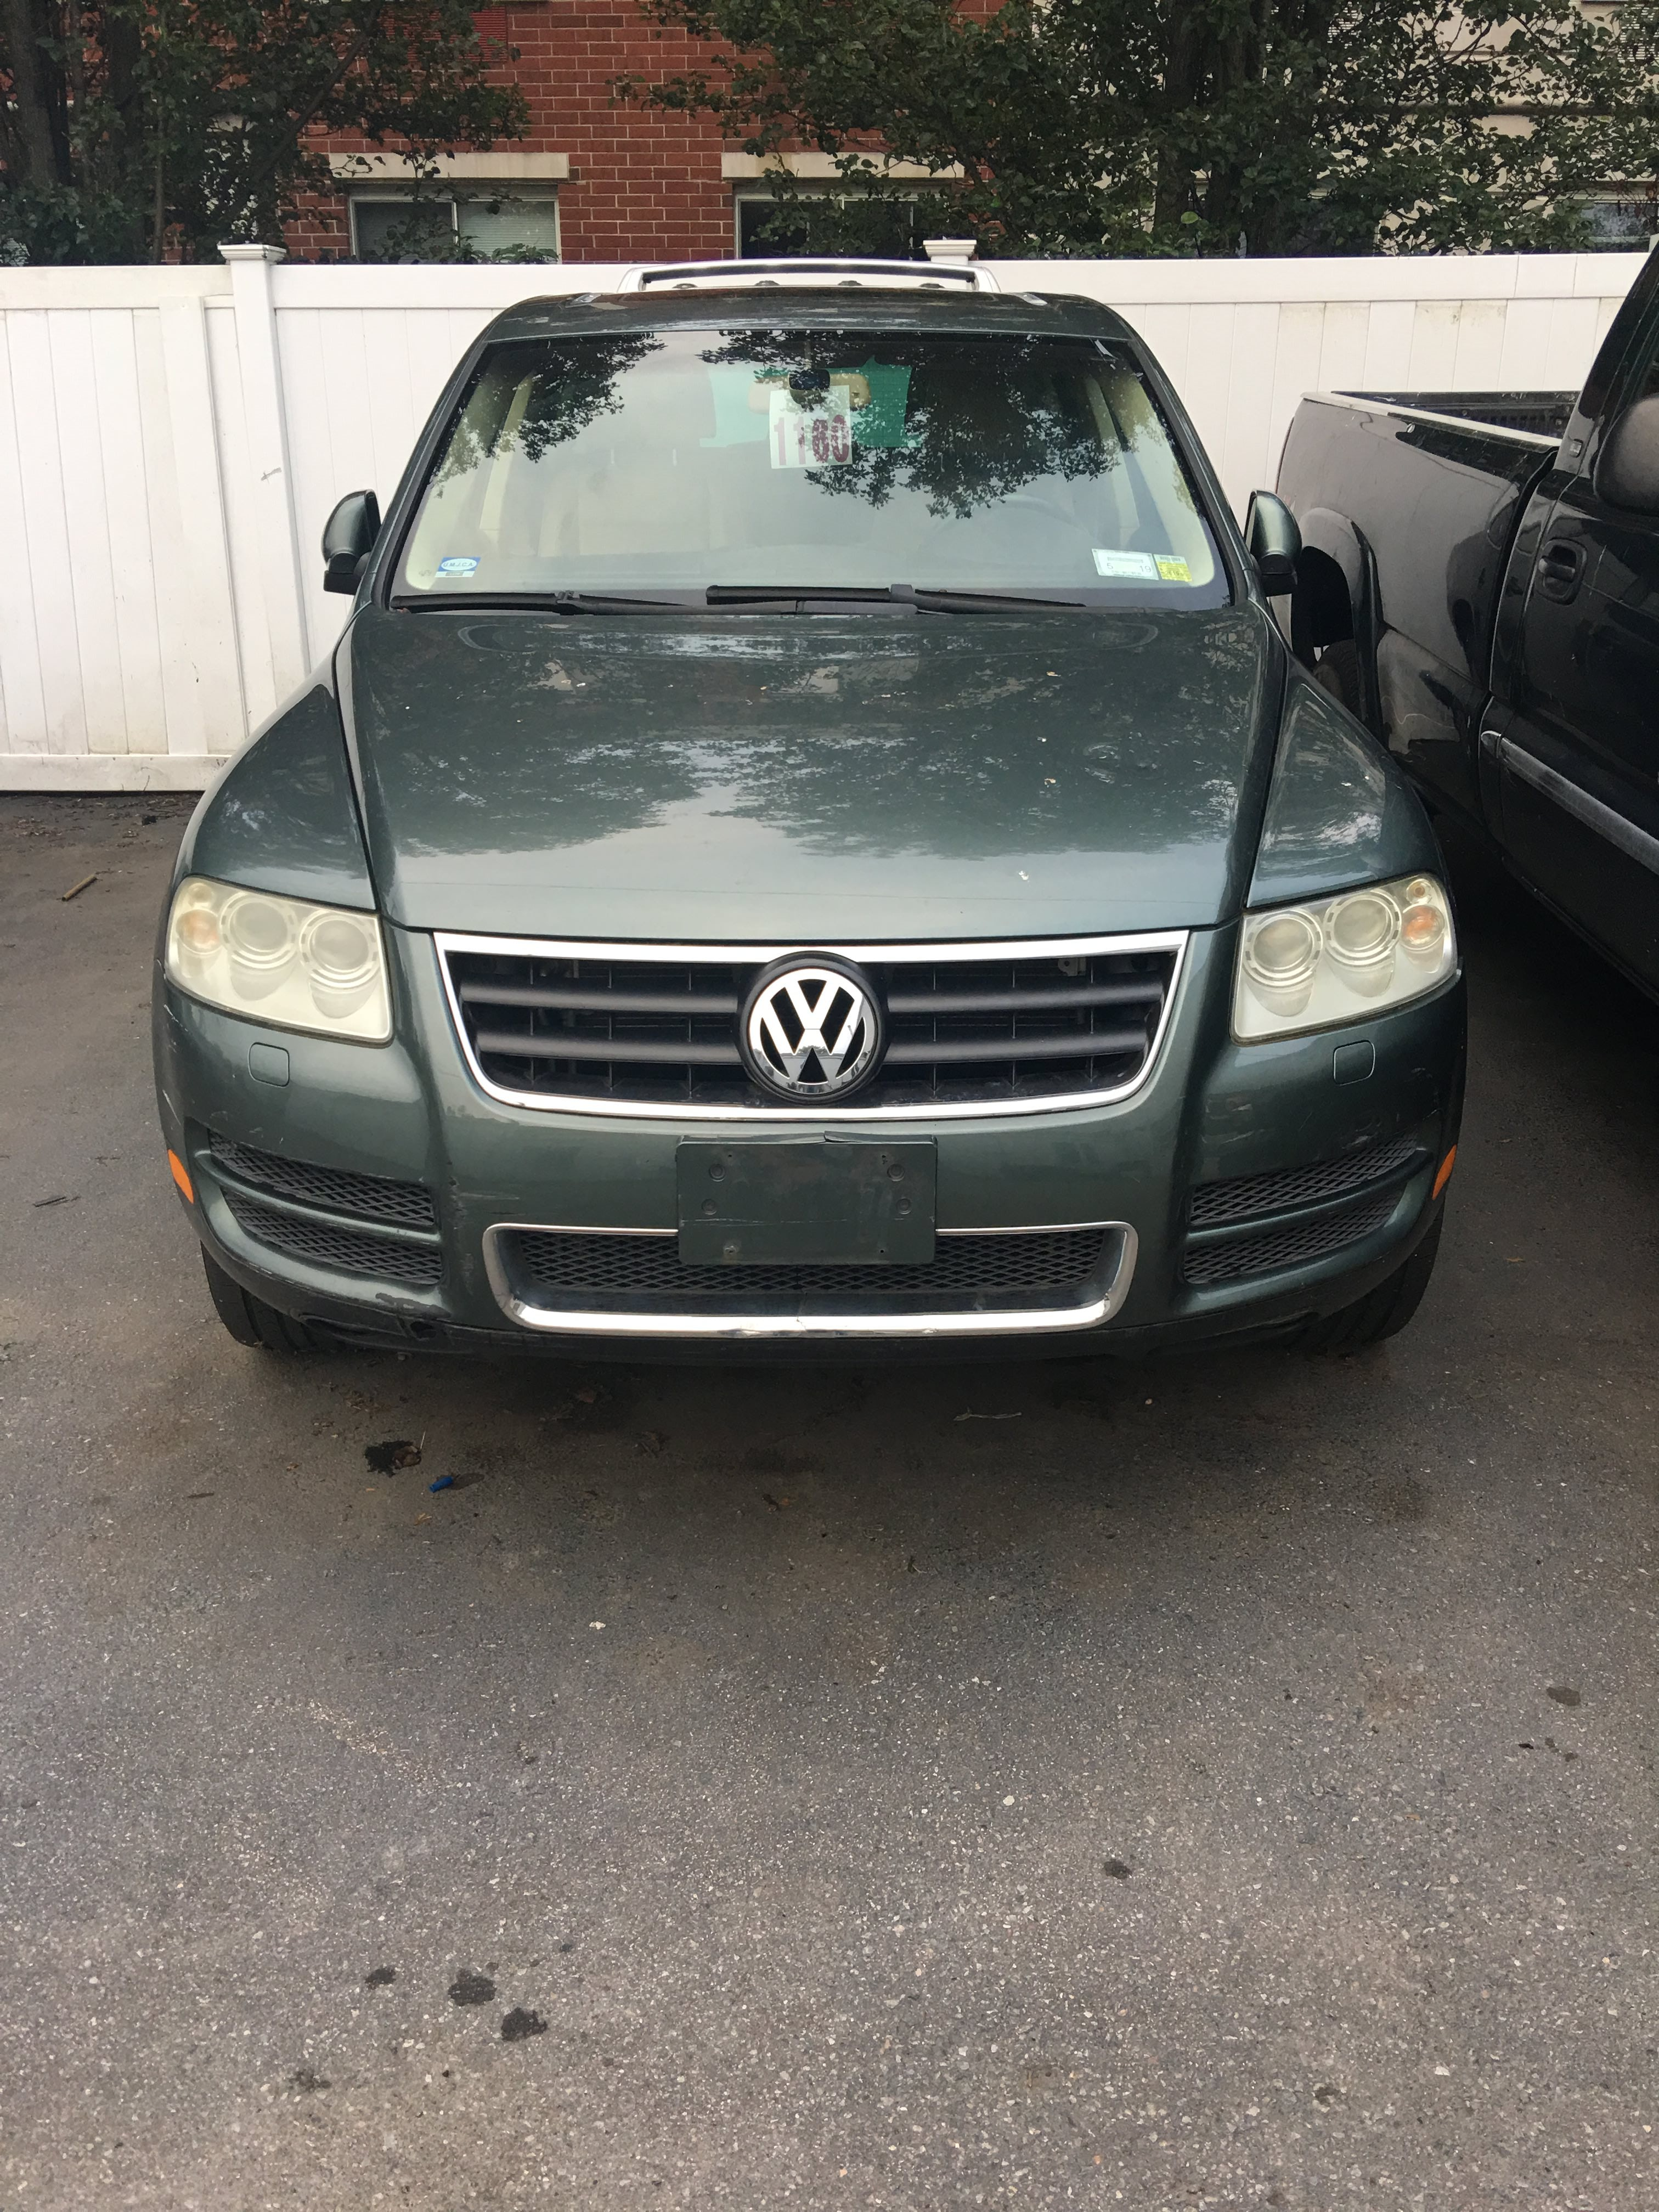 Junk 2005 Volkswagen Touareg in Great Neck